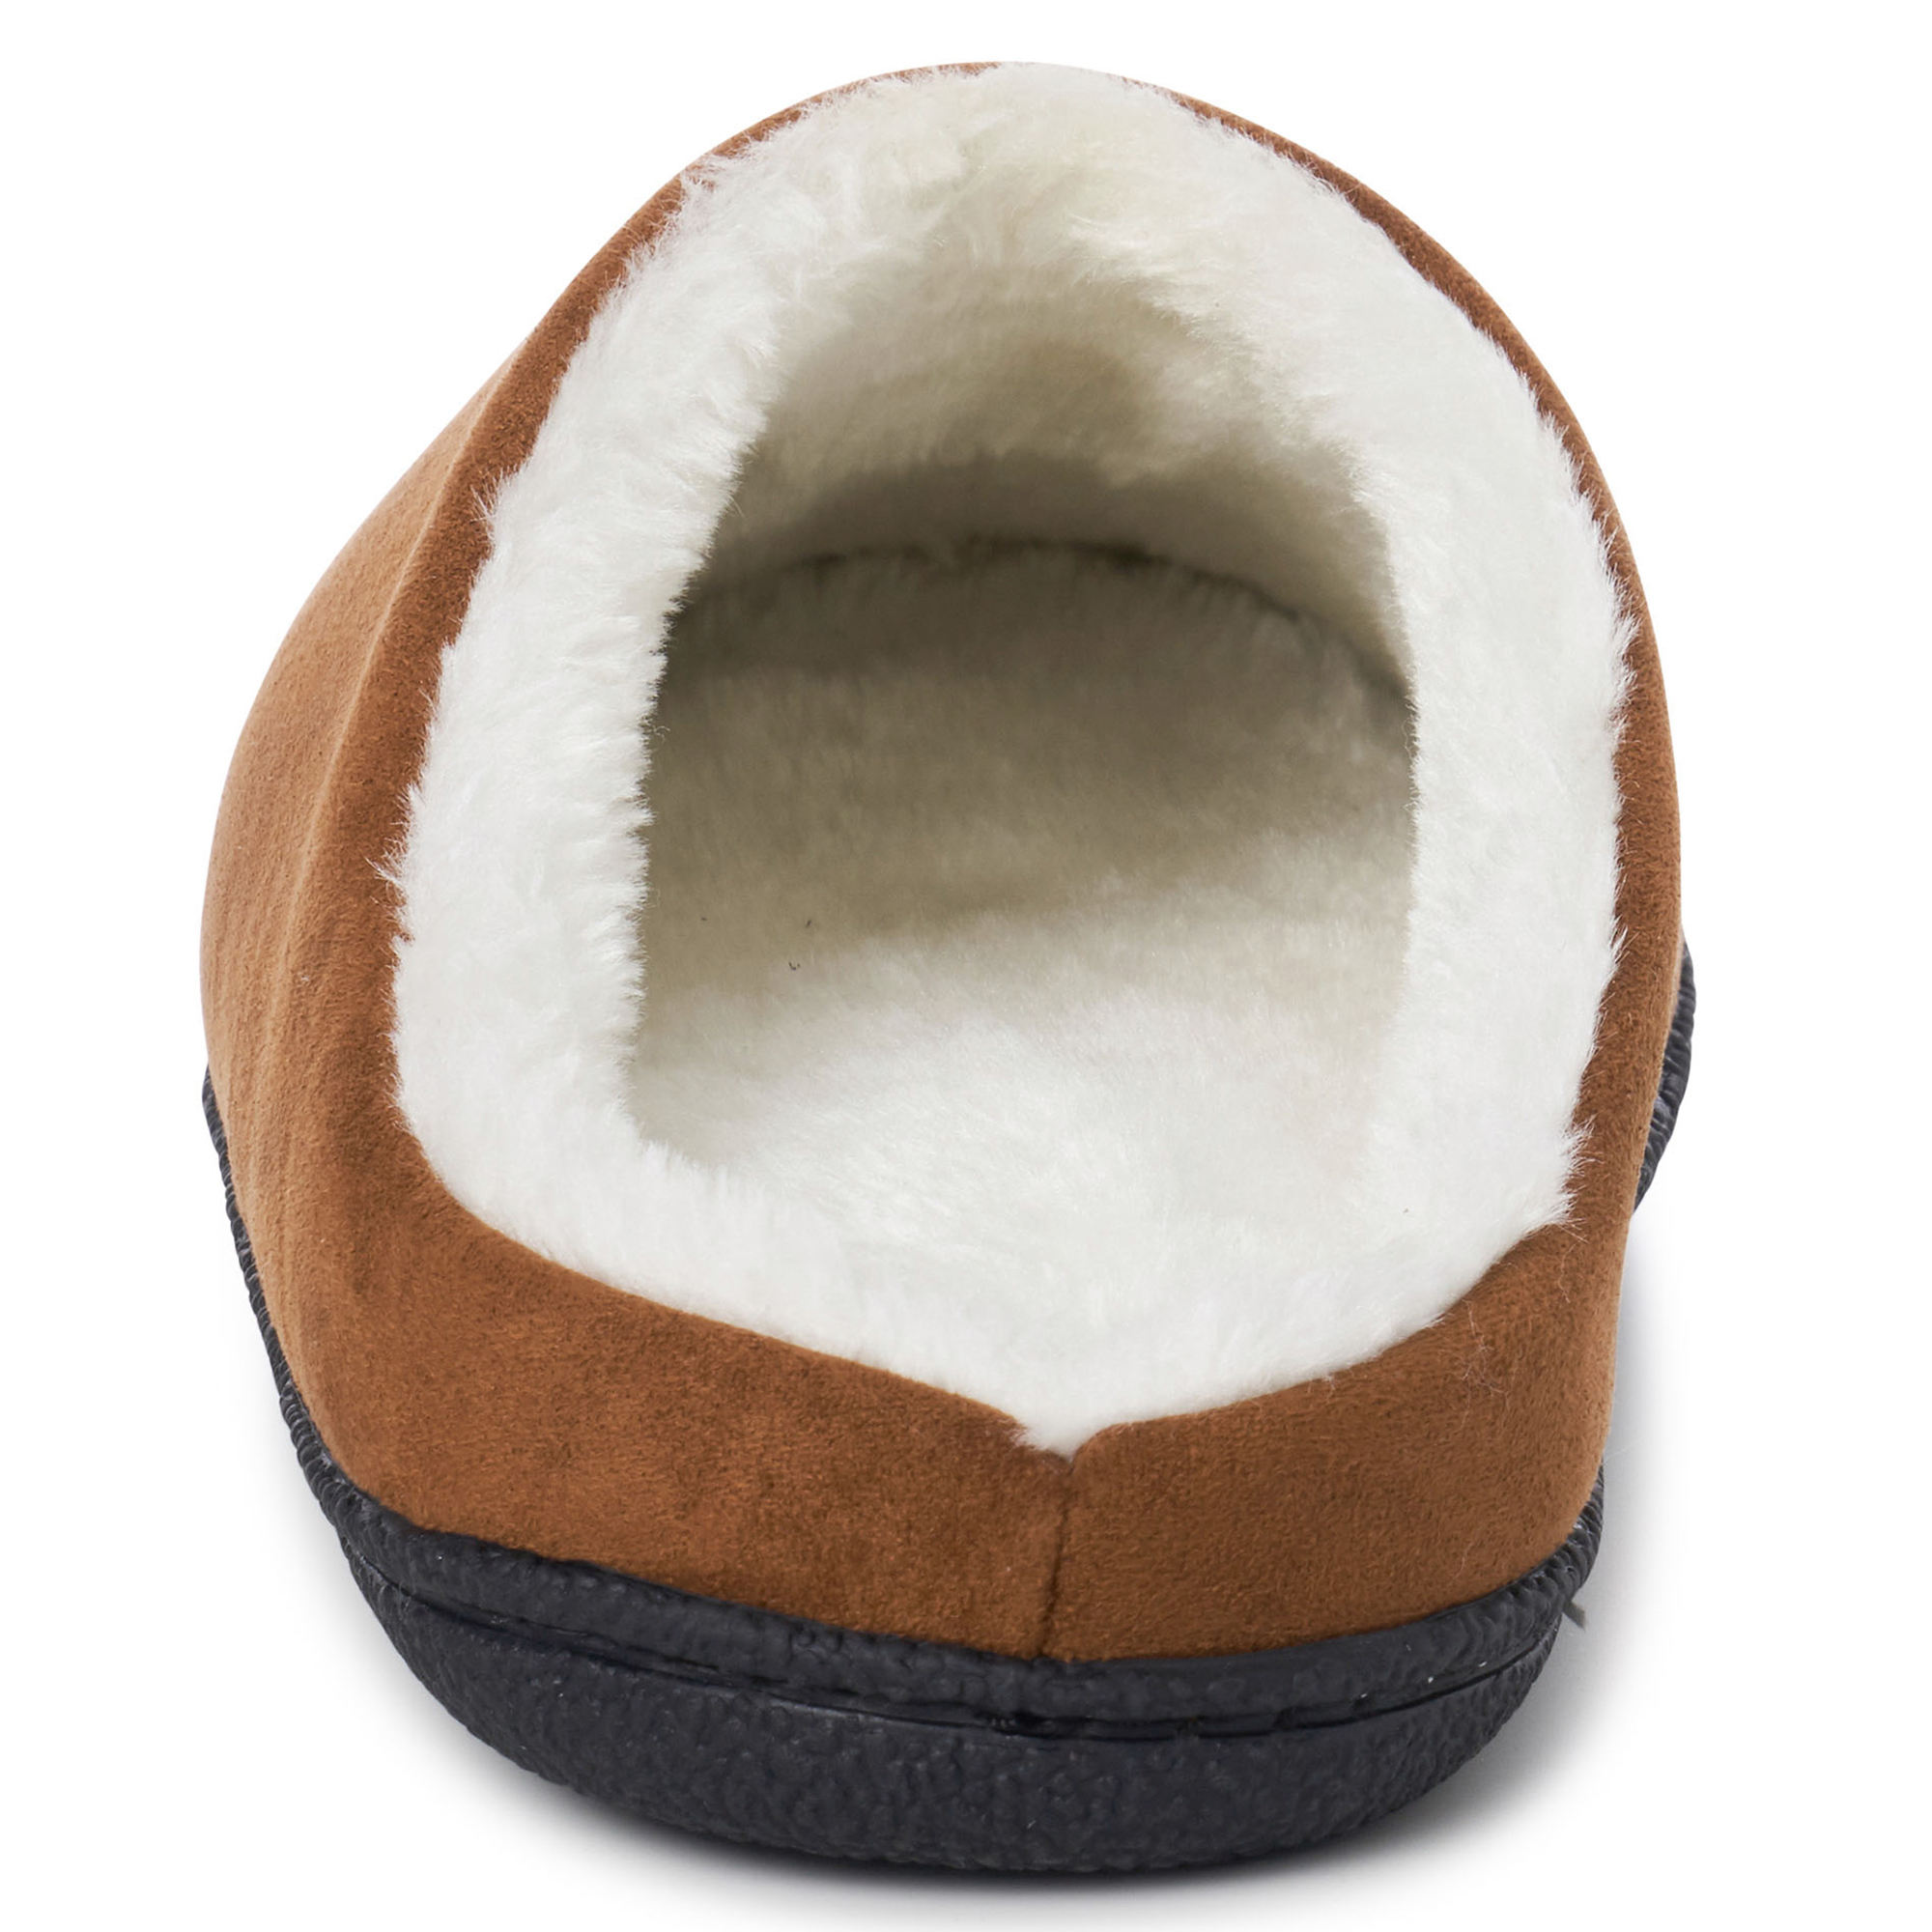 Alpine-Swiss-Mens-Memory-Foam-Clog-Slippers-Indoor-Comfort-Slip-On-House-Shoes thumbnail 21